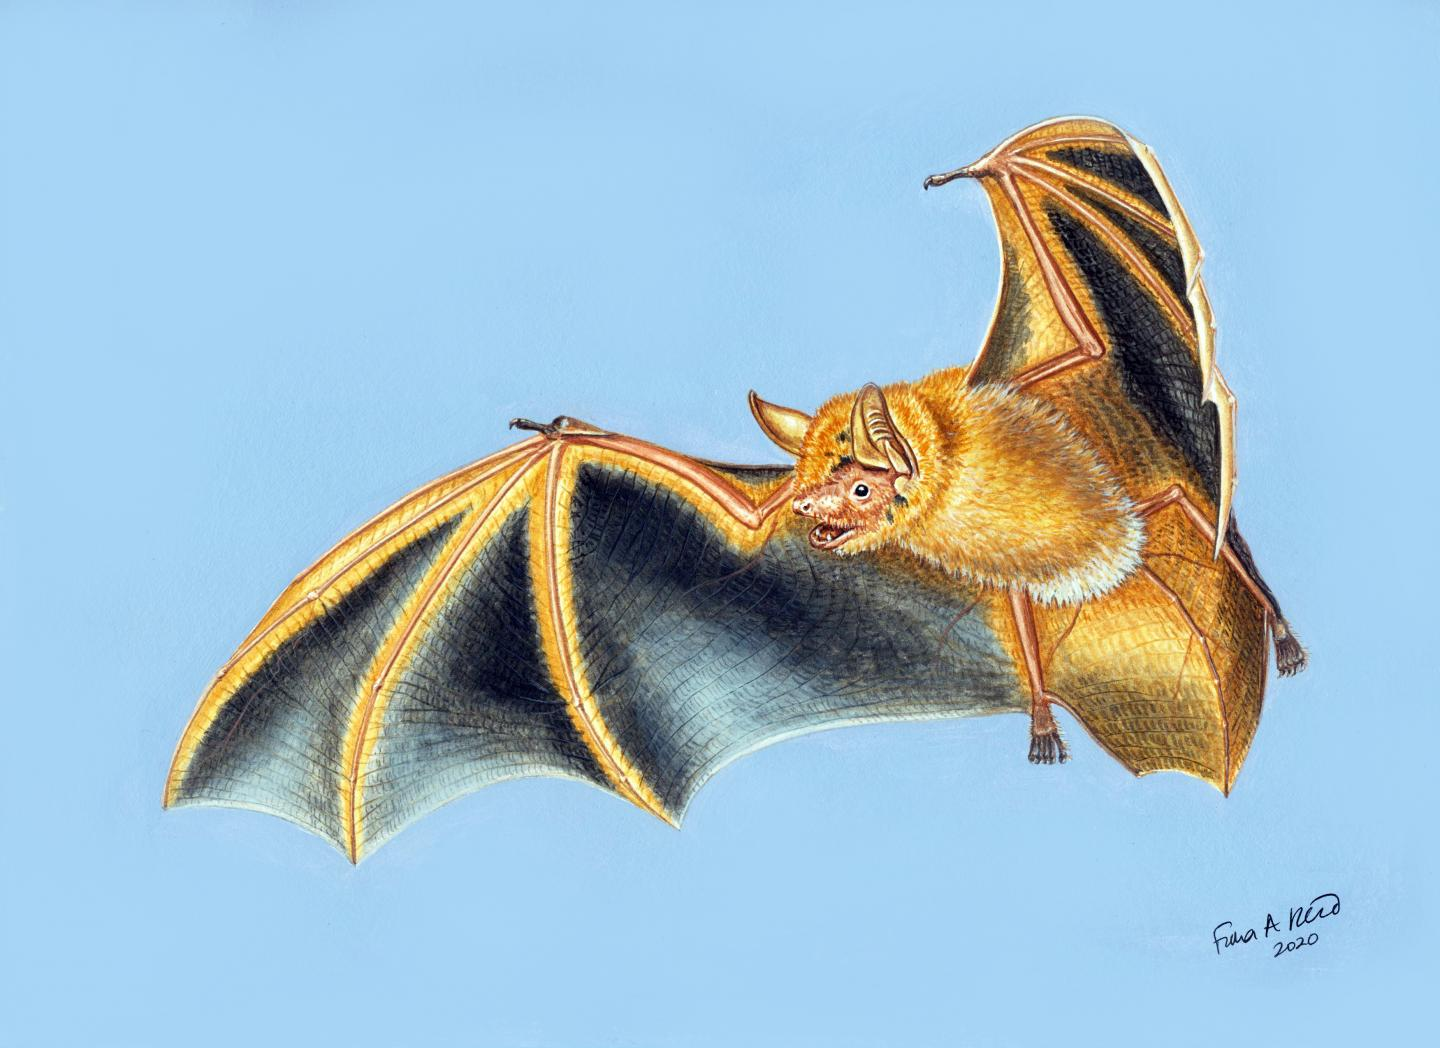 An illustration of Myotis nimbaensis, shows its wings spread. Image by Fiona Reid.